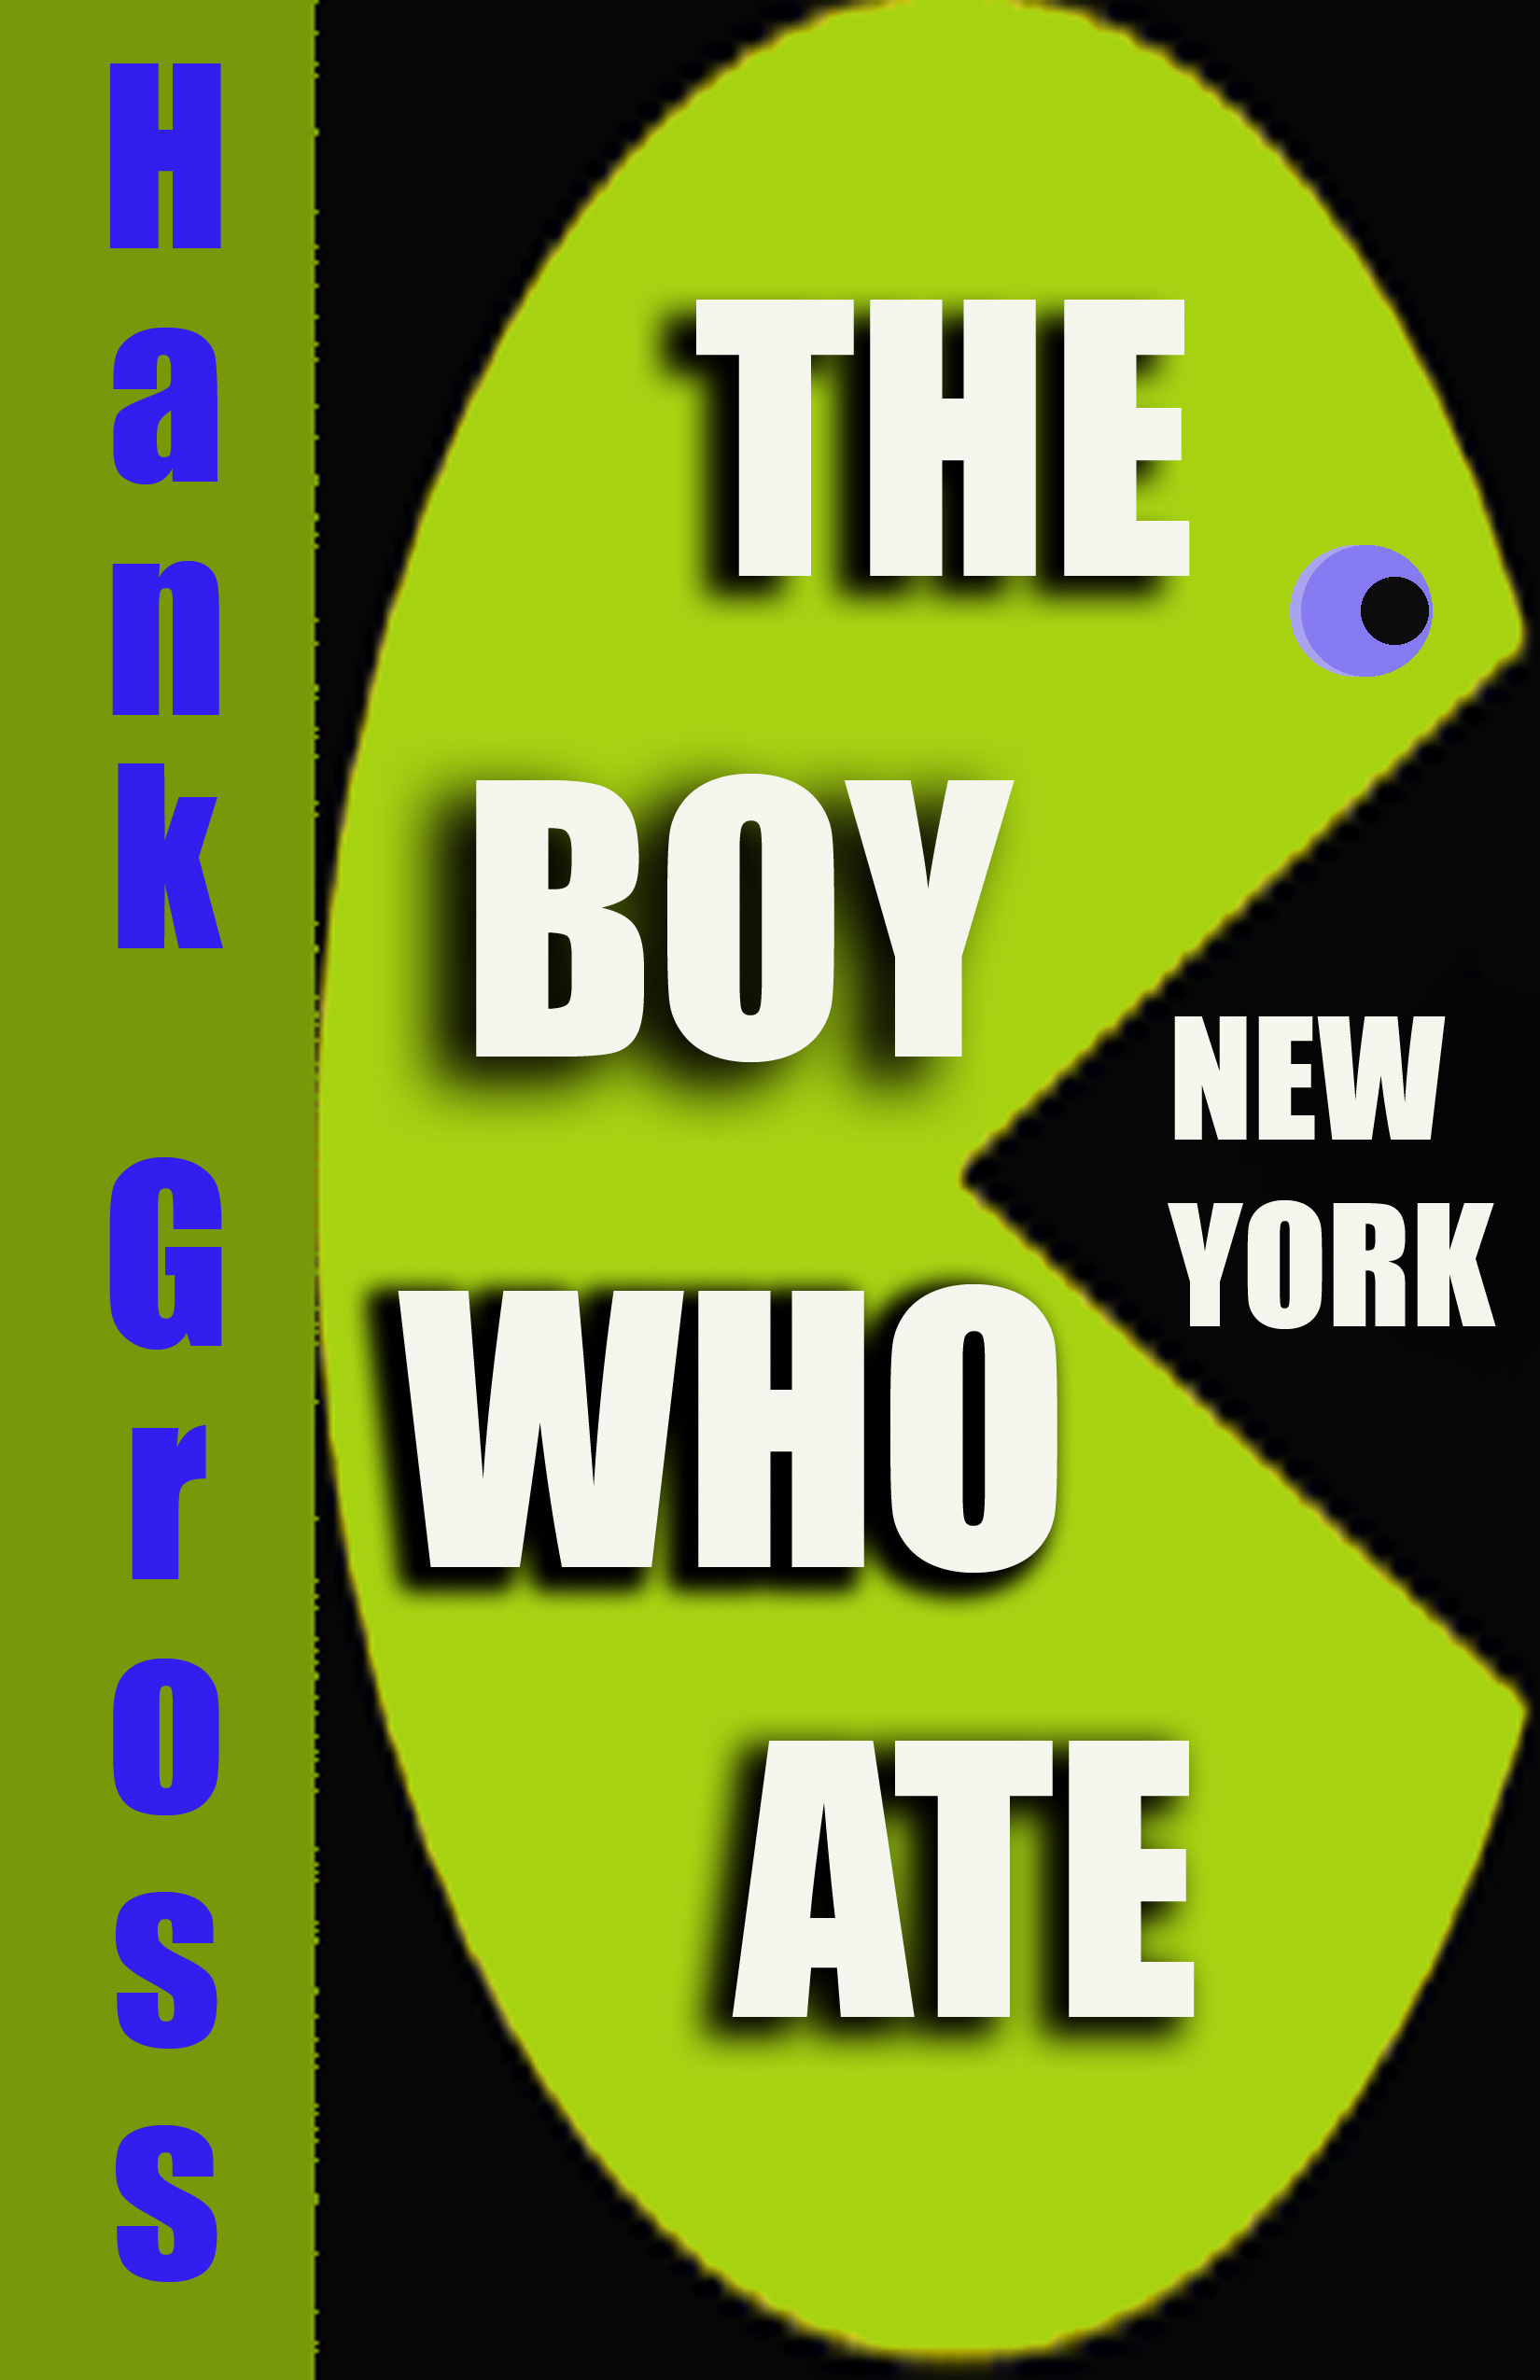 The Boy Who Ate New York